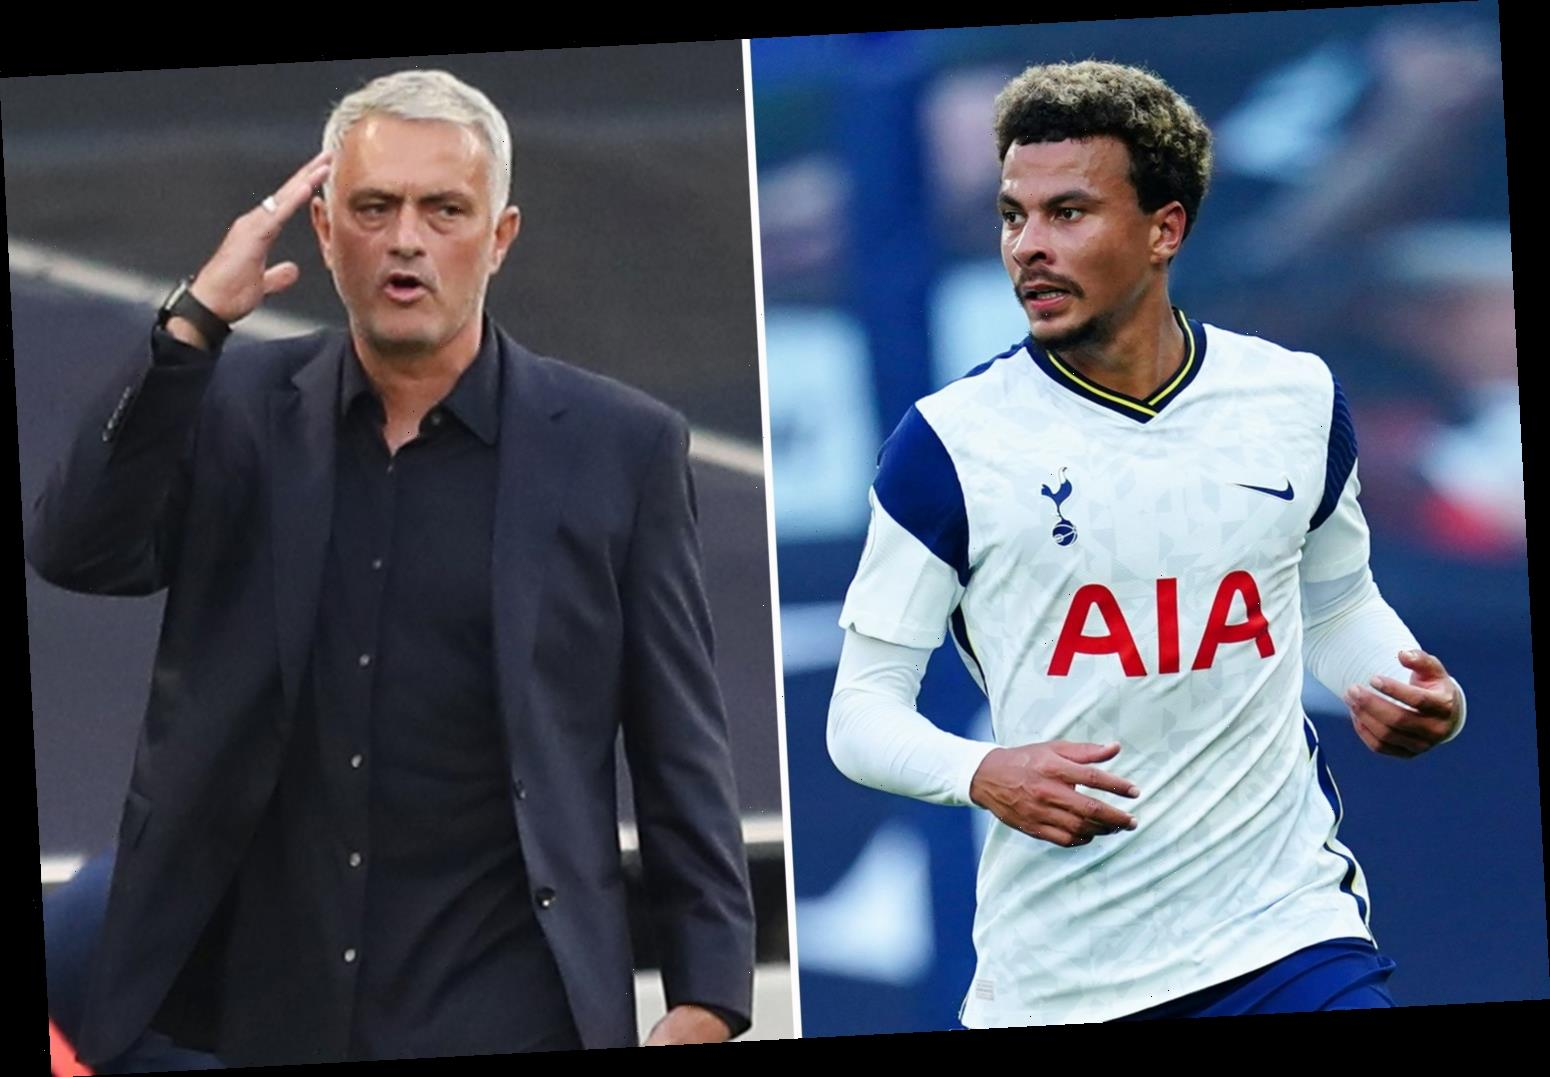 Dele Alli fell out with Spurs boss Jose Mourinho BEFORE half-time sub in Everton loss, reveals Agbonlahor